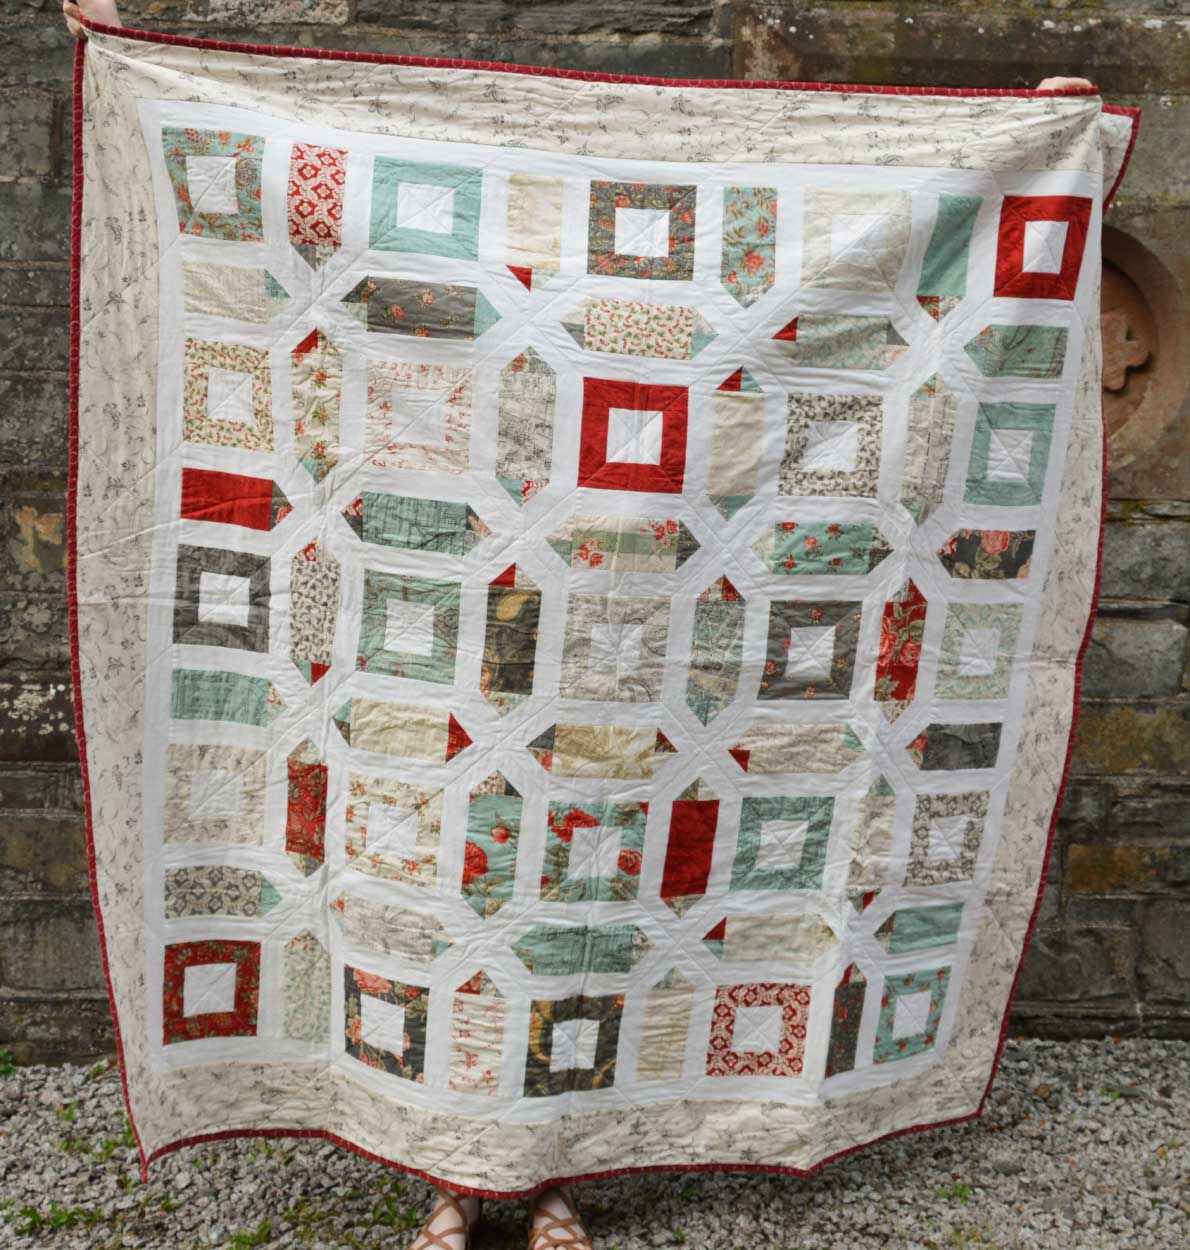 Quilts for Grenfell - Dumfries & Galloway Modern Quilt Guild (DGMQG) // Three Sisters Quilt